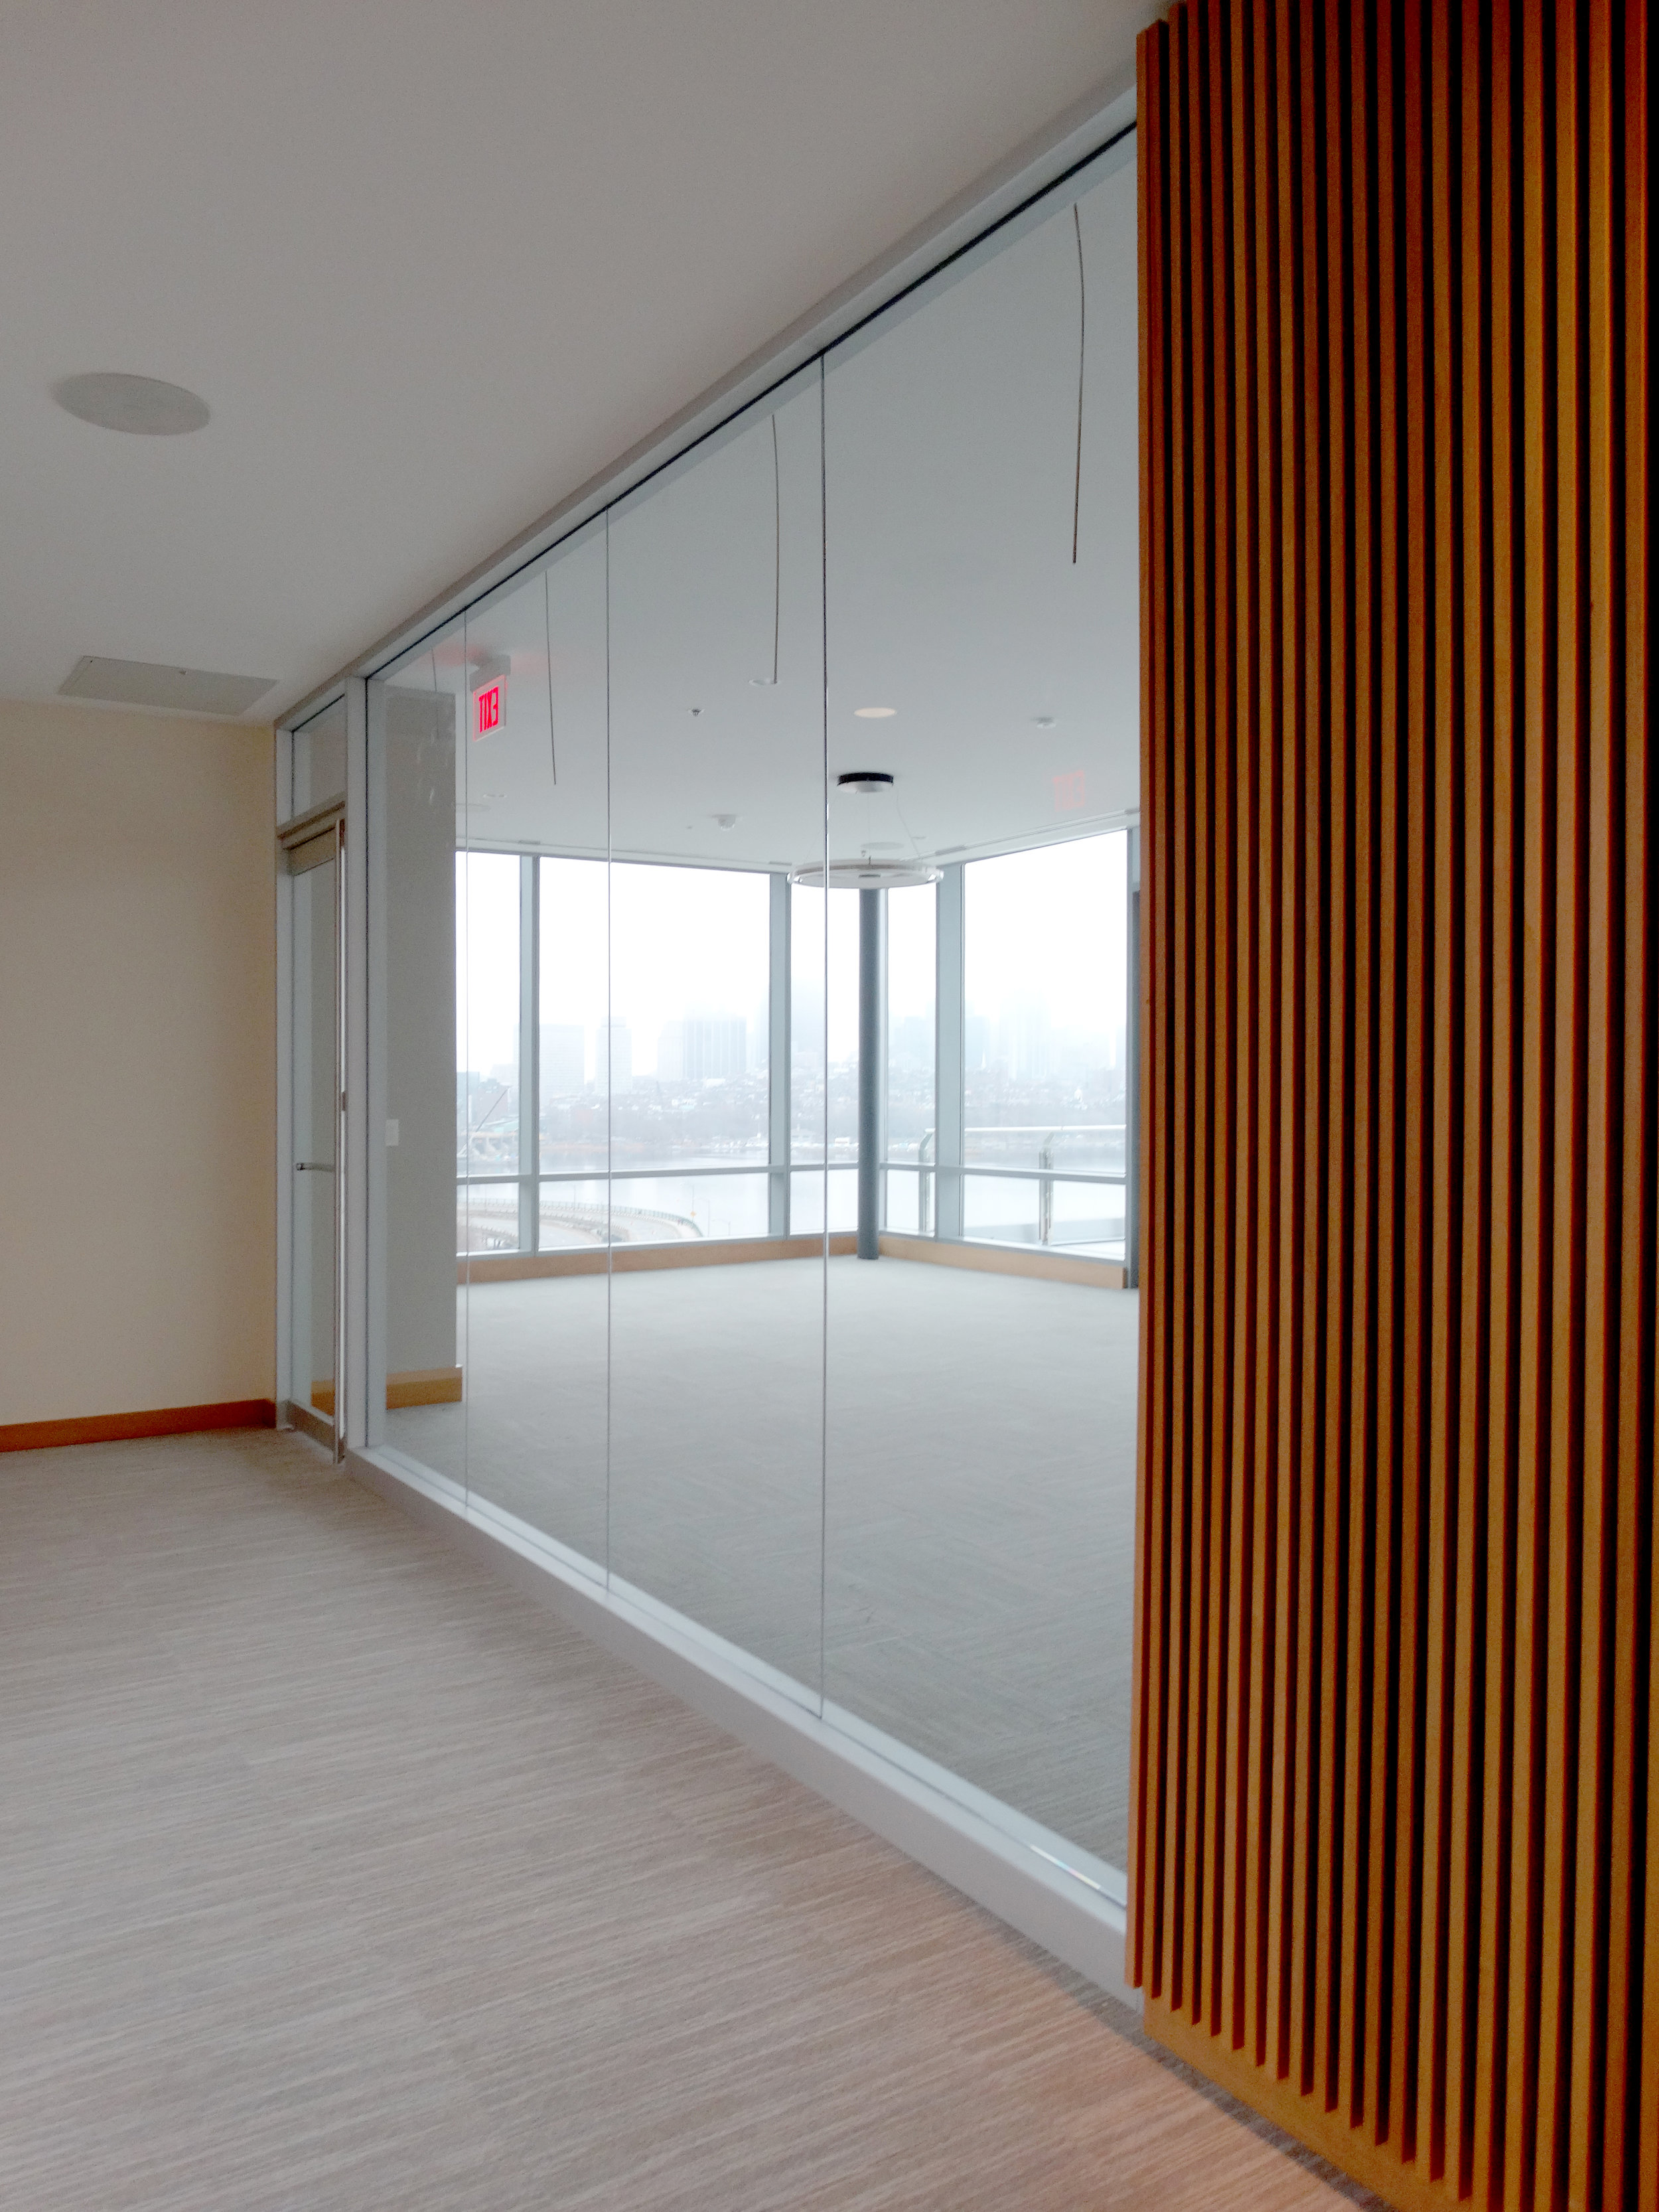 Encase Aluminum Framed Glass Millwork Wall - Spaceworks AI.jpg